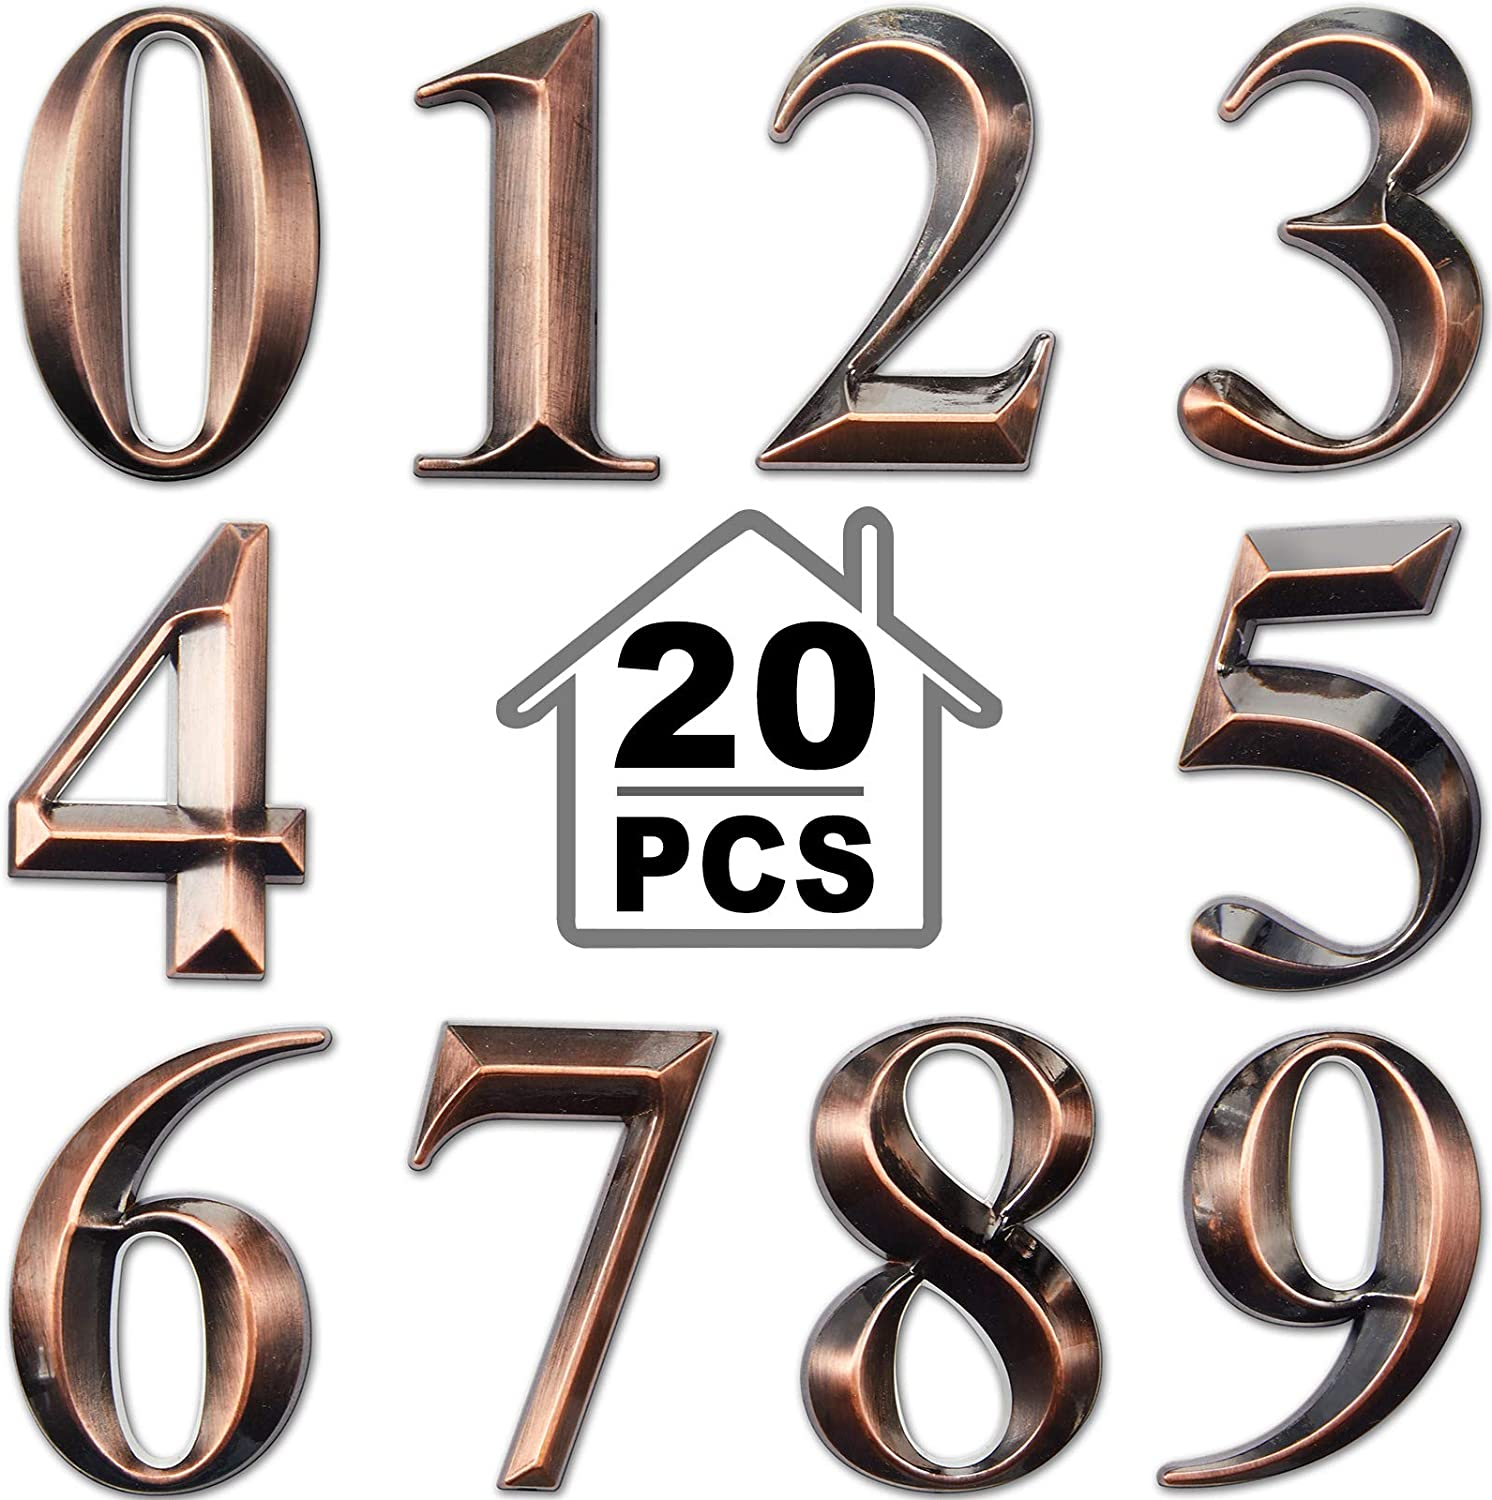 20 Pieces 3D Mailbox Numbers 0-9 Self-Adhesive 2 Inch Address Number Stickers Door House Numbers Style Street Mailbox Sign for Apartment Home Office (Bronze)